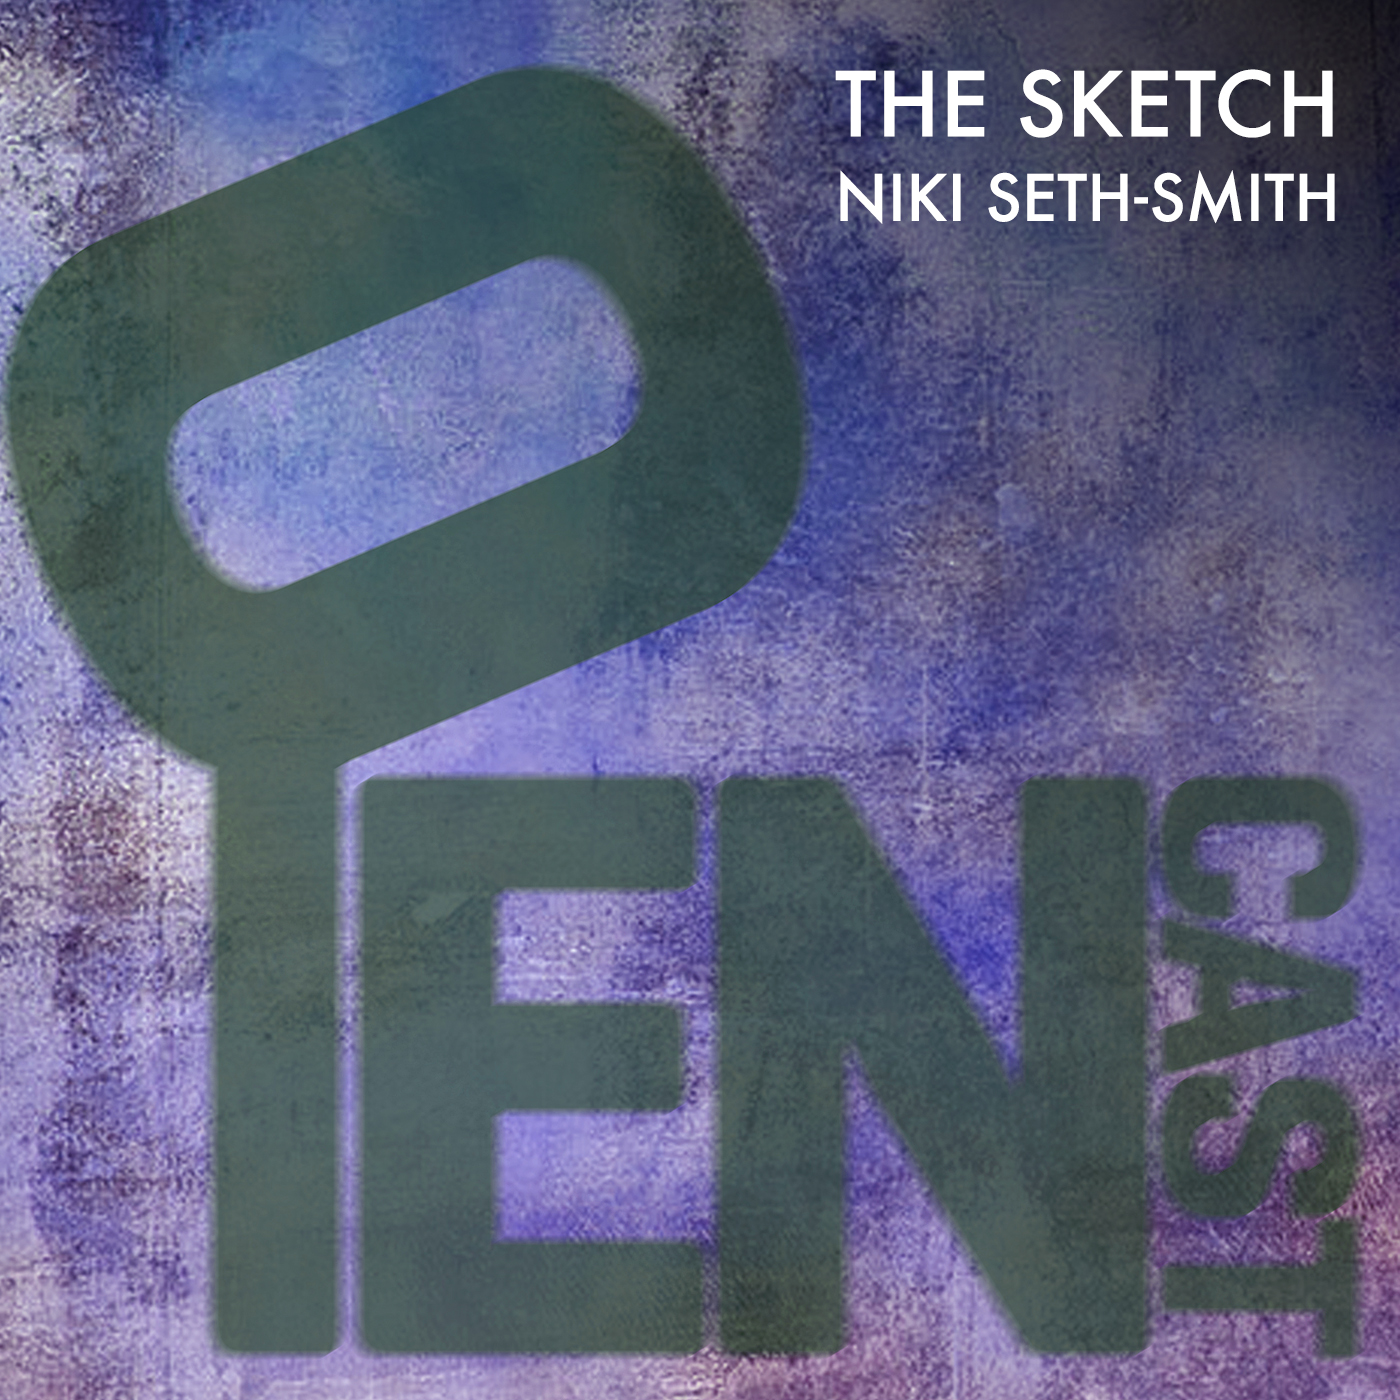 The Sketch - Niki Seth-Smith